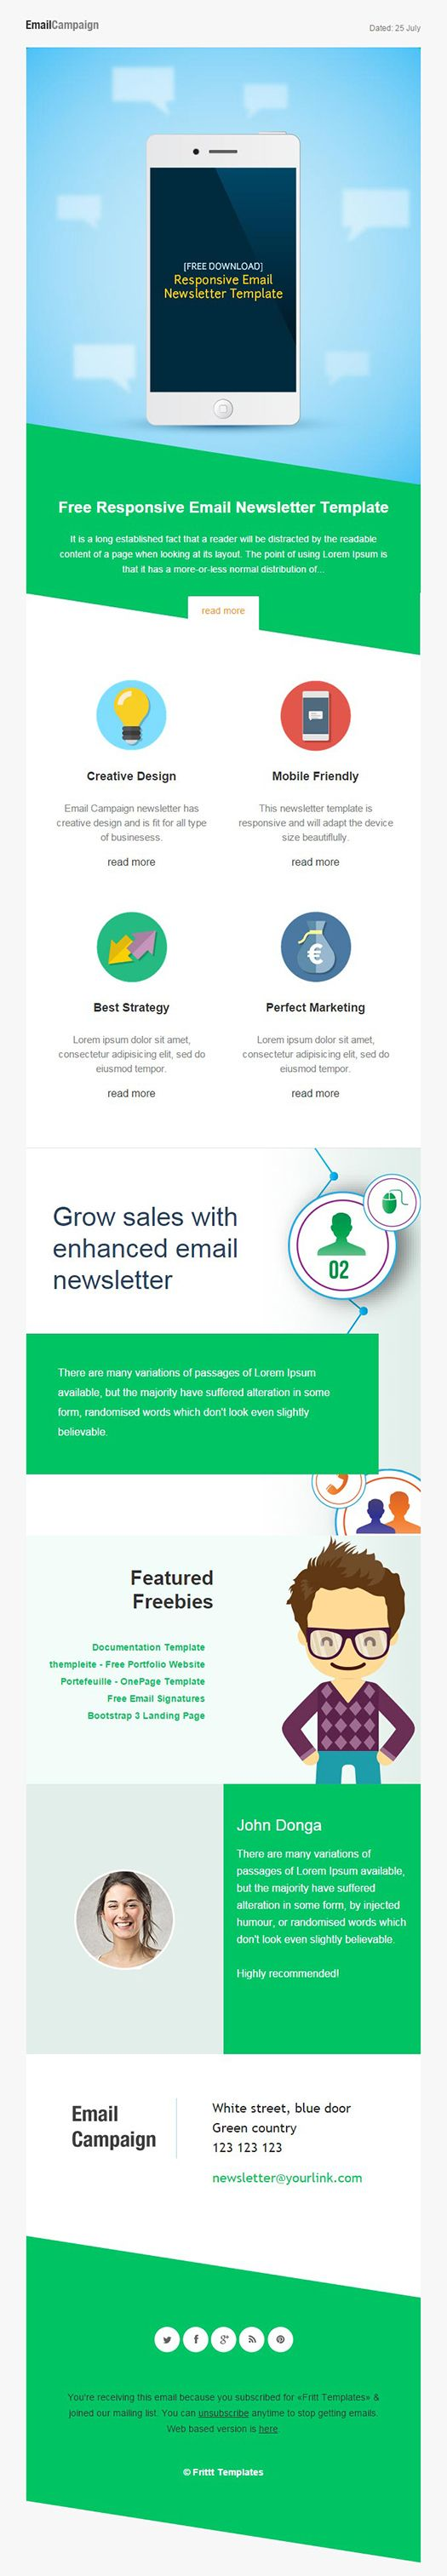 78 best email Marketing images on Pinterest | Email marketing, Email ...